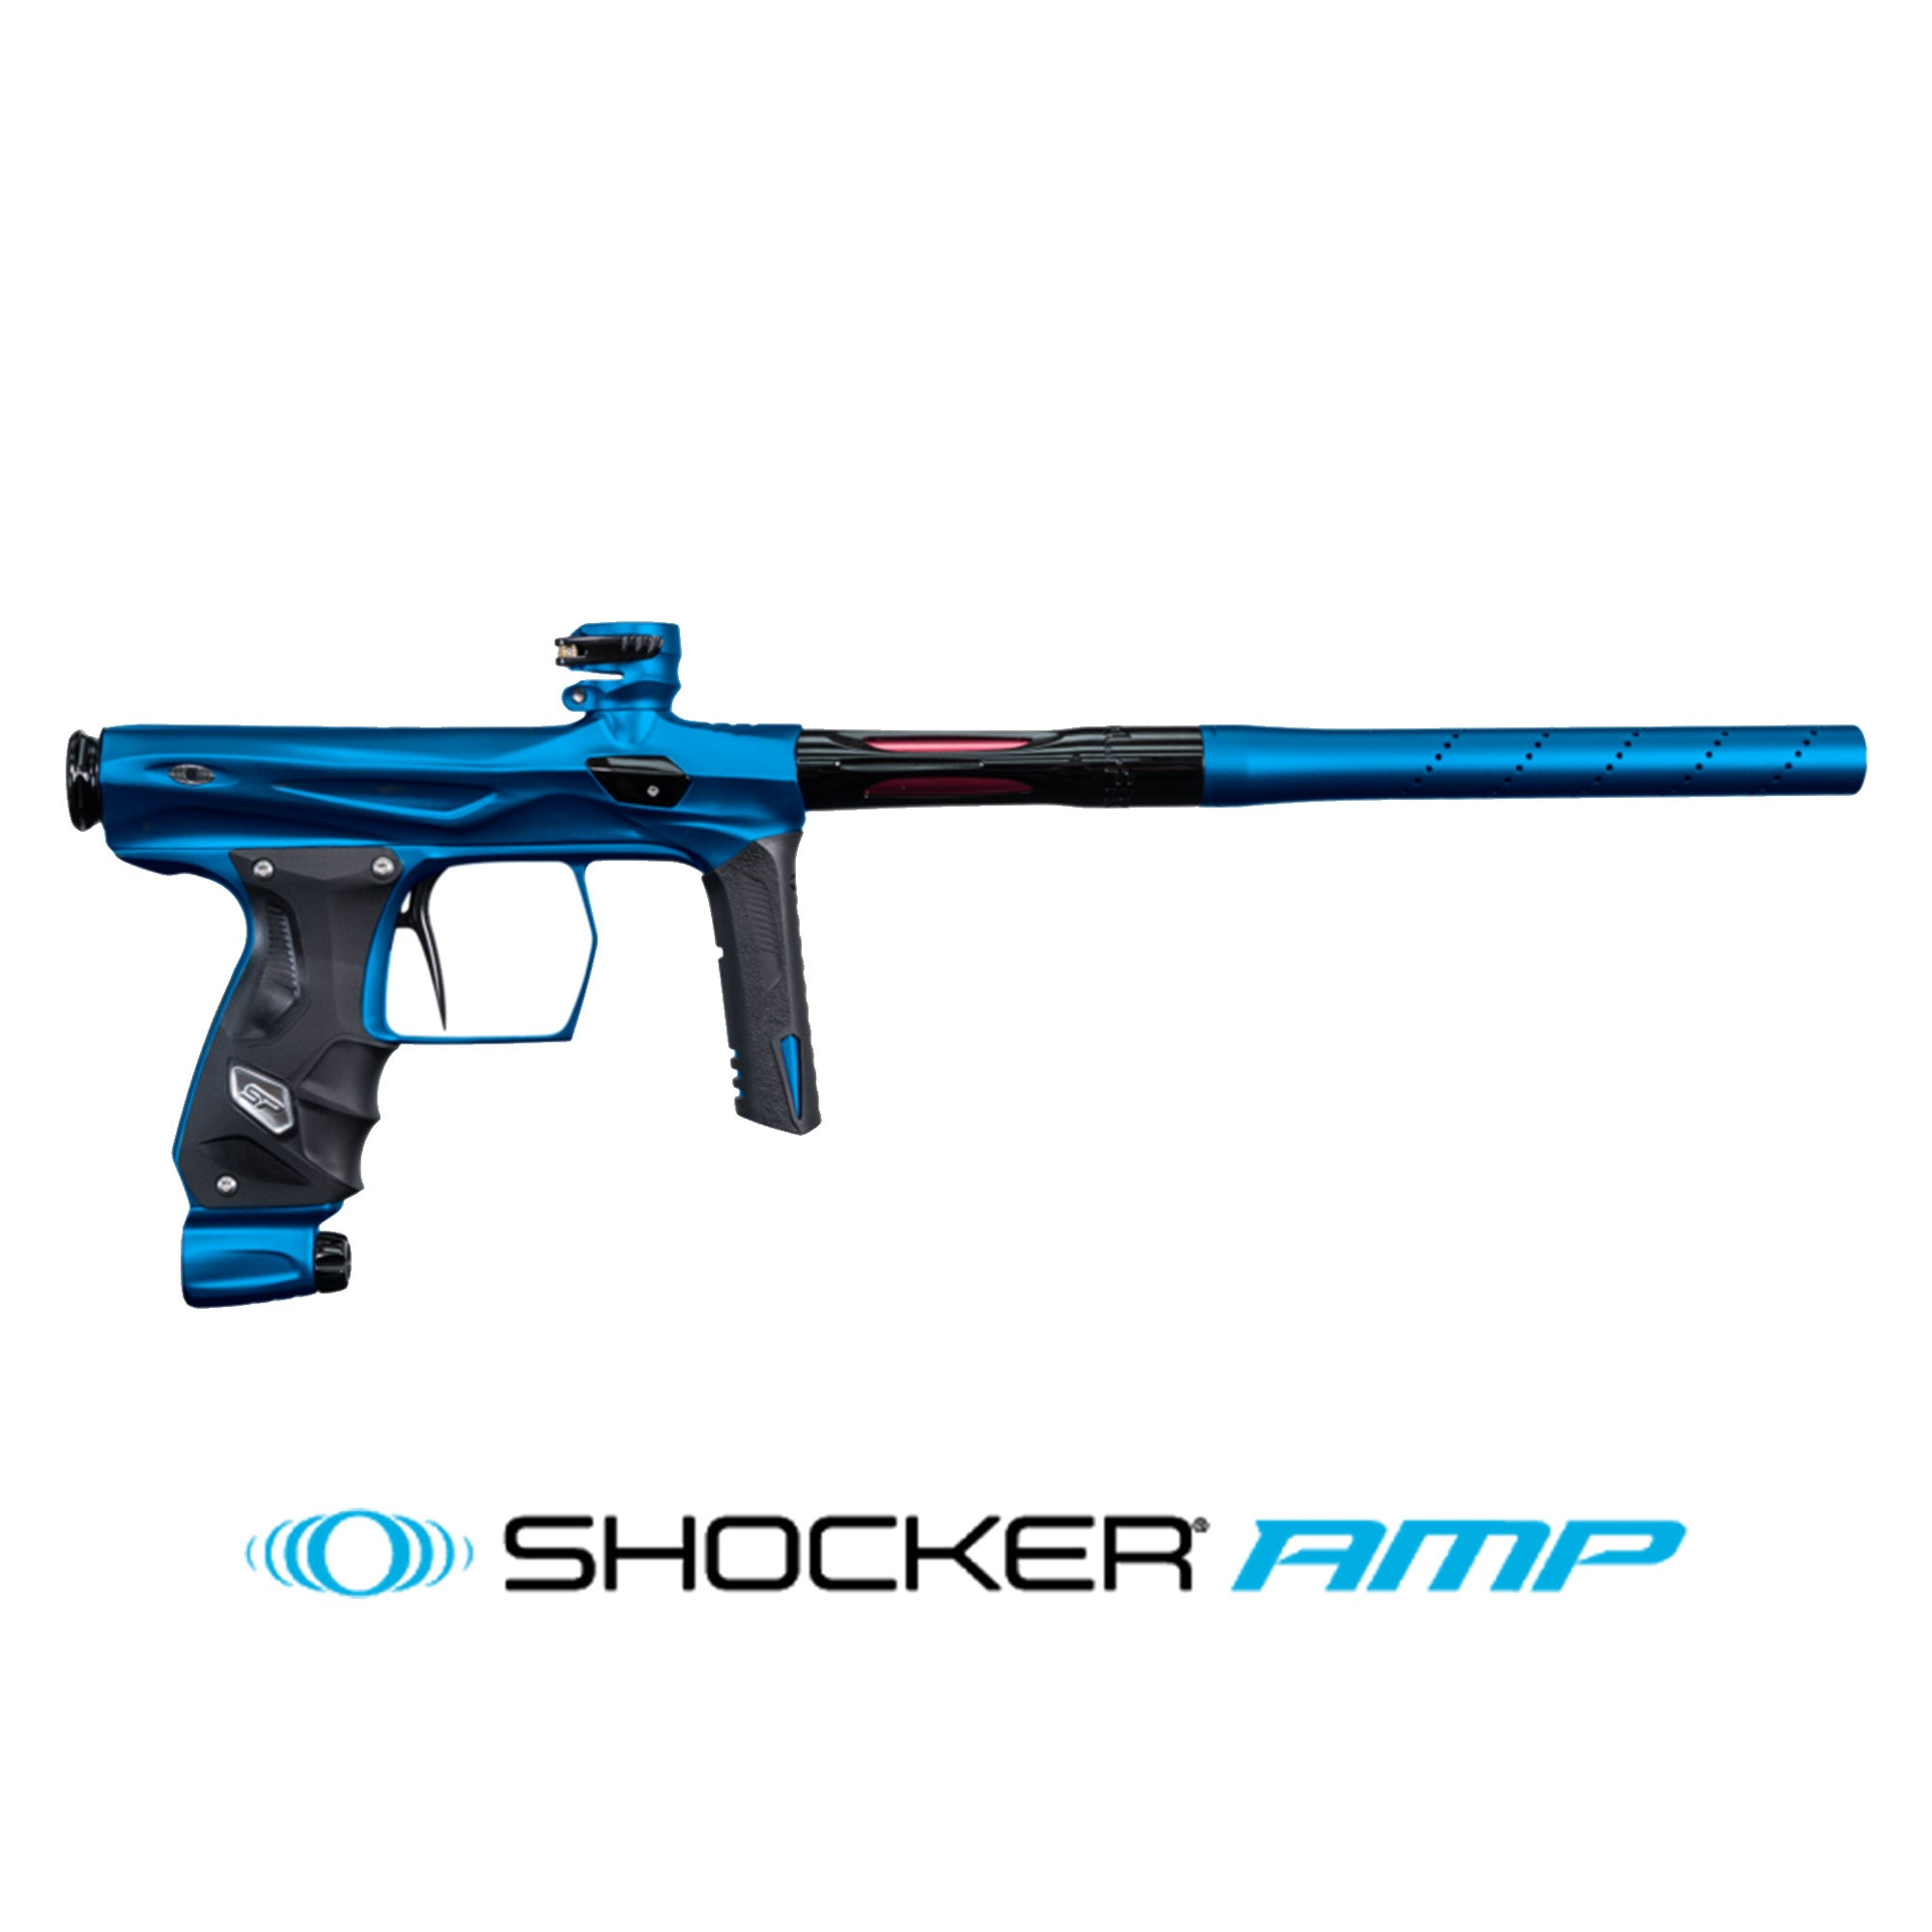 SP Shocker AMP - Blue